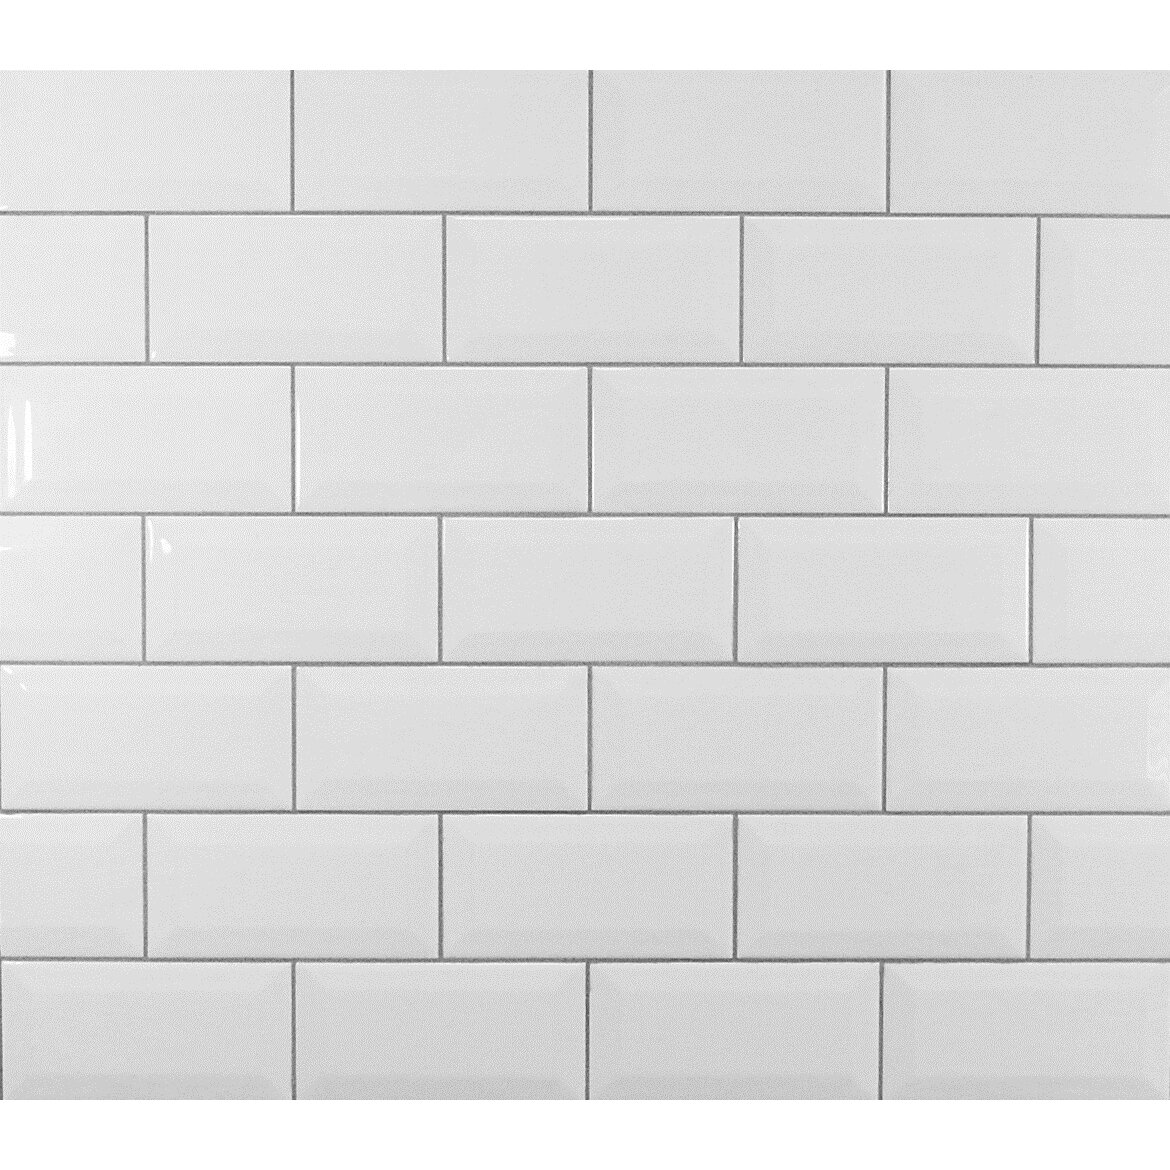 mulia tile classic beveled ceramic subway tile in white